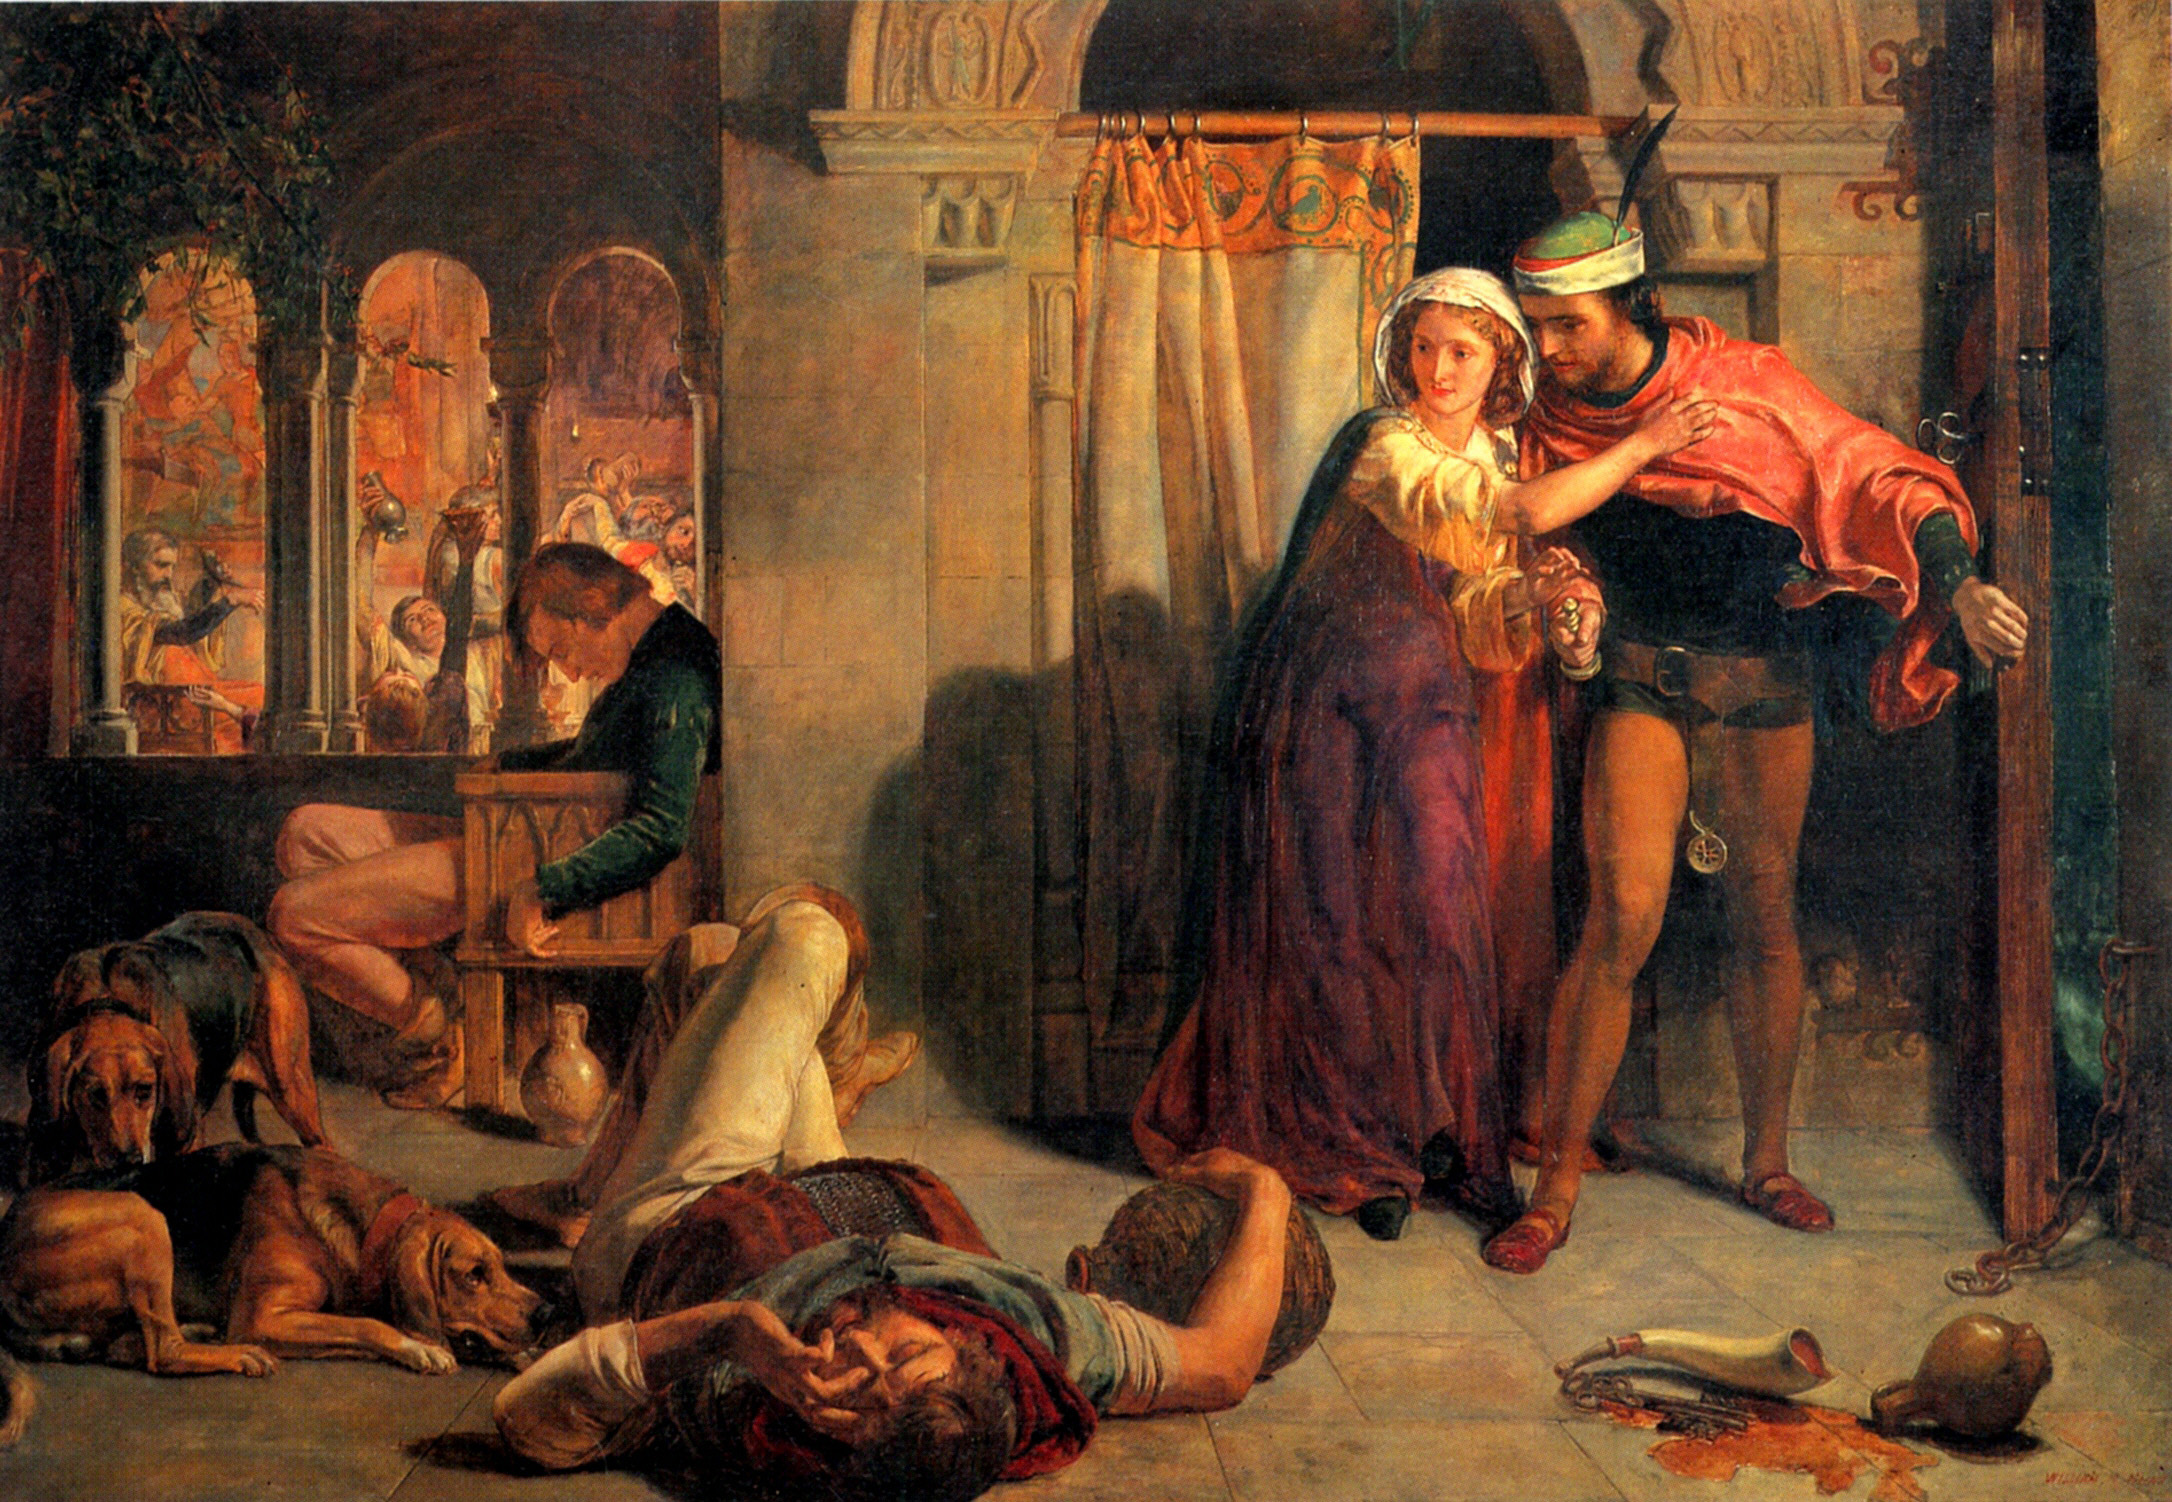 The flight of Madeline and Porphyro, William Holman Hunt, 1848